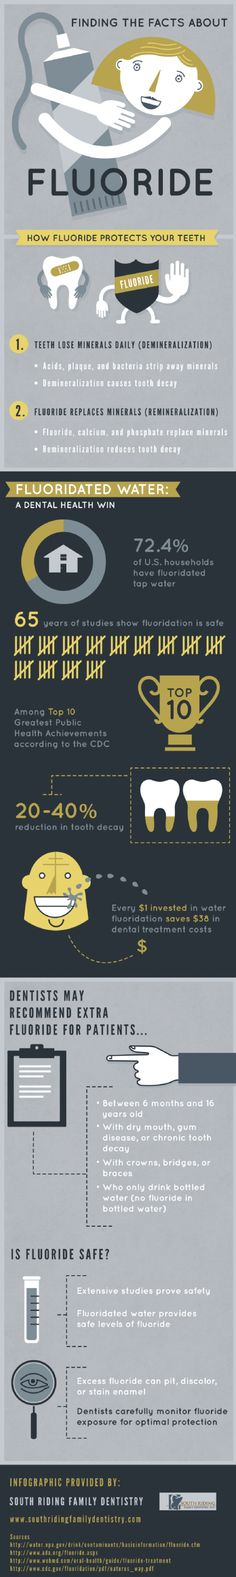 Facts about Fluoride Infographic